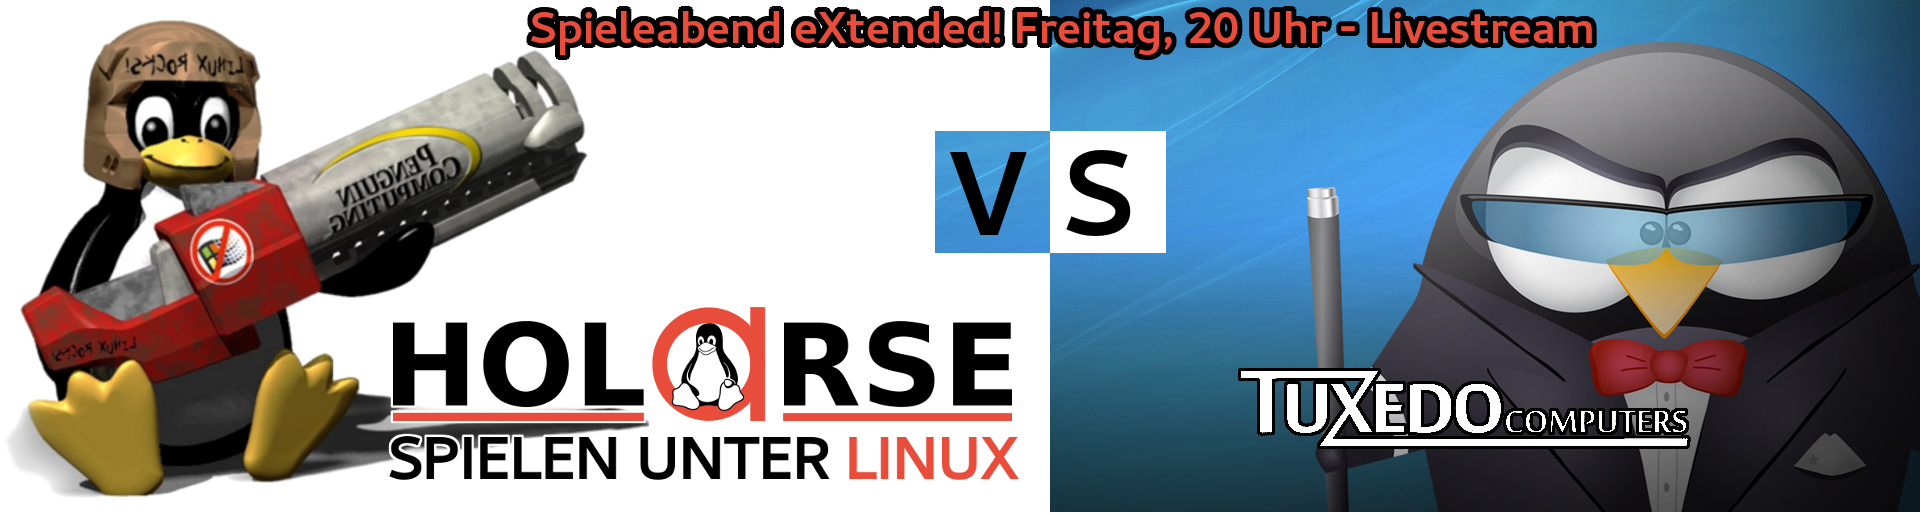 https://www.holarse-linuxgaming.de/sites/default/files/2017-04-06-1/Spieleabend_extended.png